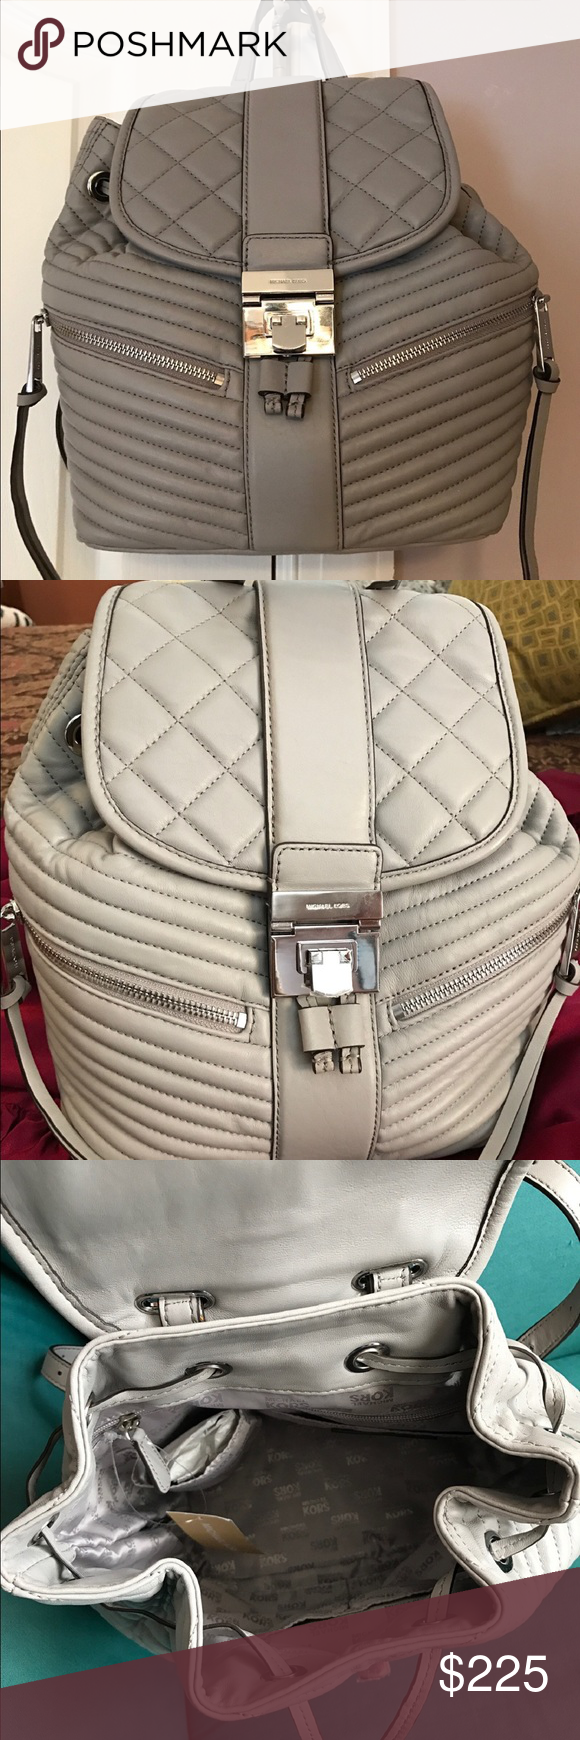 MICHAEL KORS ELISA PEARL GRAY BACKPACK Authentic Michael KORS Elisa fashion backpack is new w/tags. Beautiful ocean pearl gray color, soft leather exterior with nickel silver hardware and 2 zip side pockets. Pull string & flap lock closure. Signature MK print satin fabric interior with 1 zip and 4 additional interior pockets. Clean and smoke free. Michael Kors Bags Backpacks